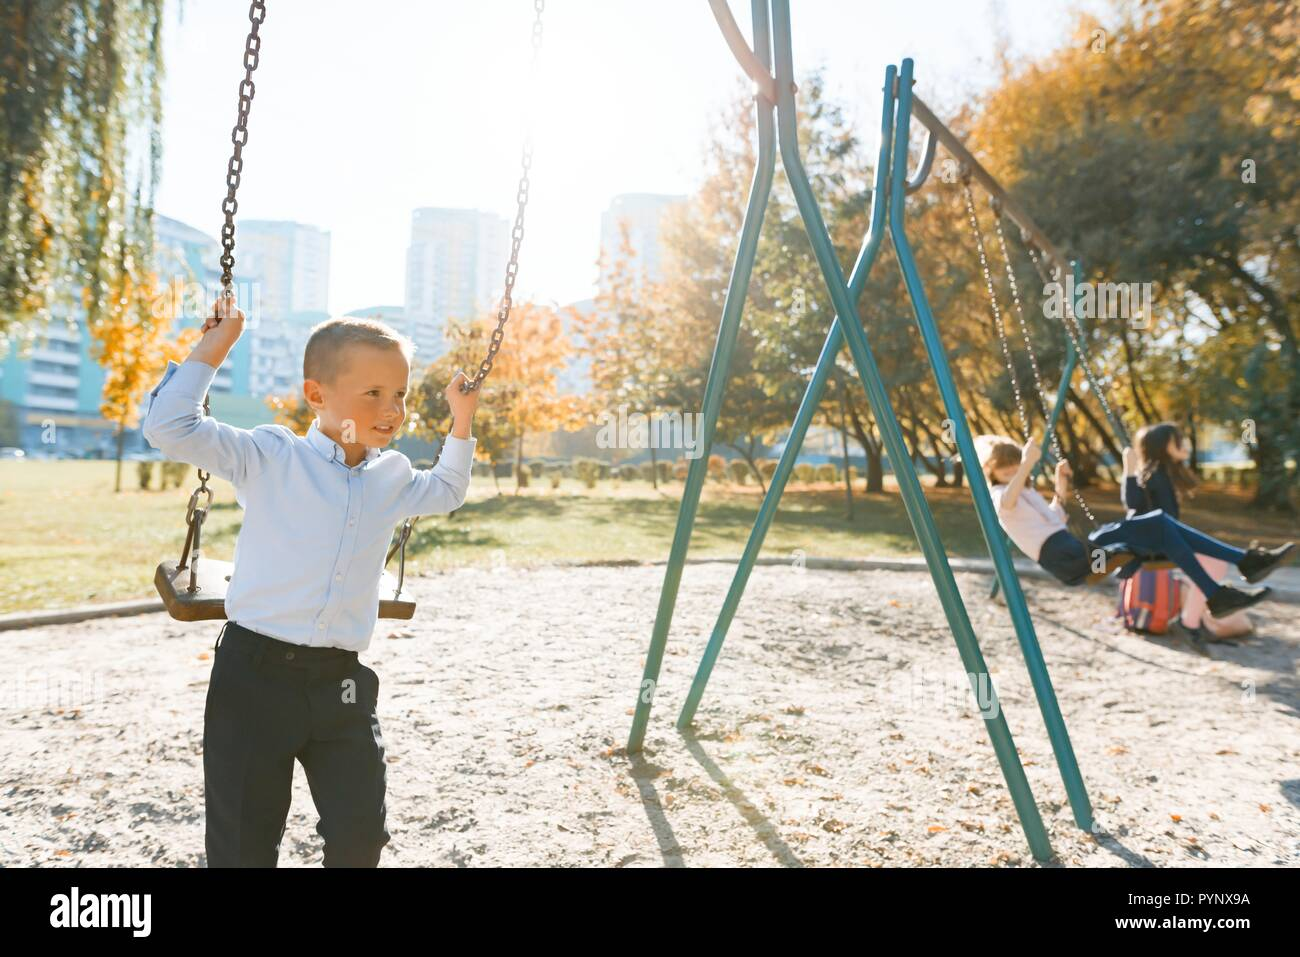 Children ride on a swing in autumn park. Focus on the boy, the girls in the distance, golden hour. Stock Photo